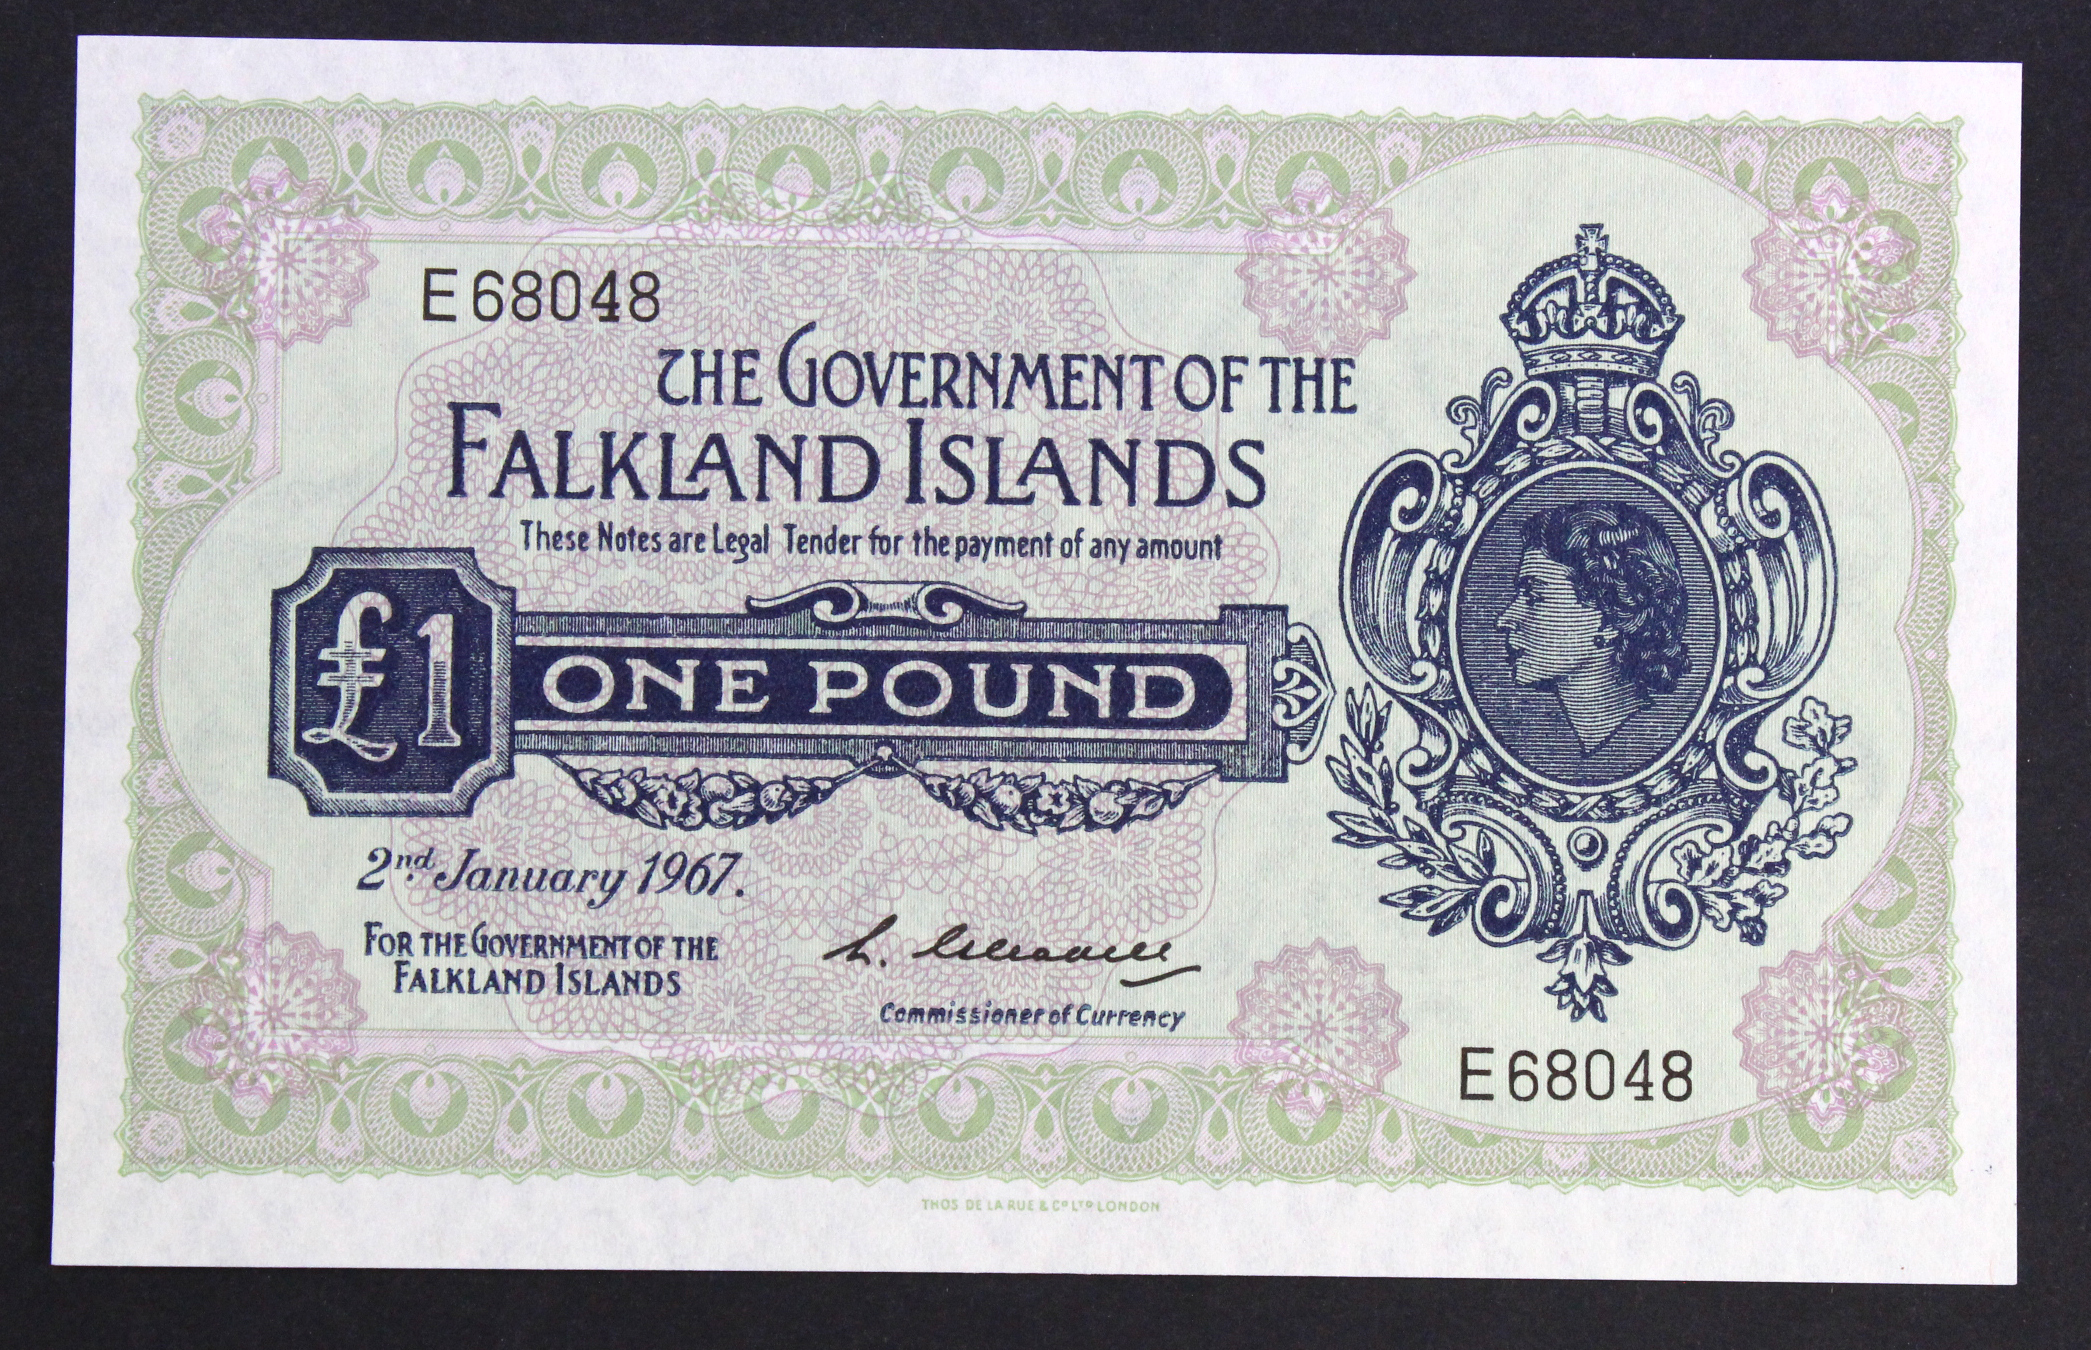 Falkland Islands 1 Pound dated 2nd January 1967, scarcer first date of issue, serial E68048 (TBB